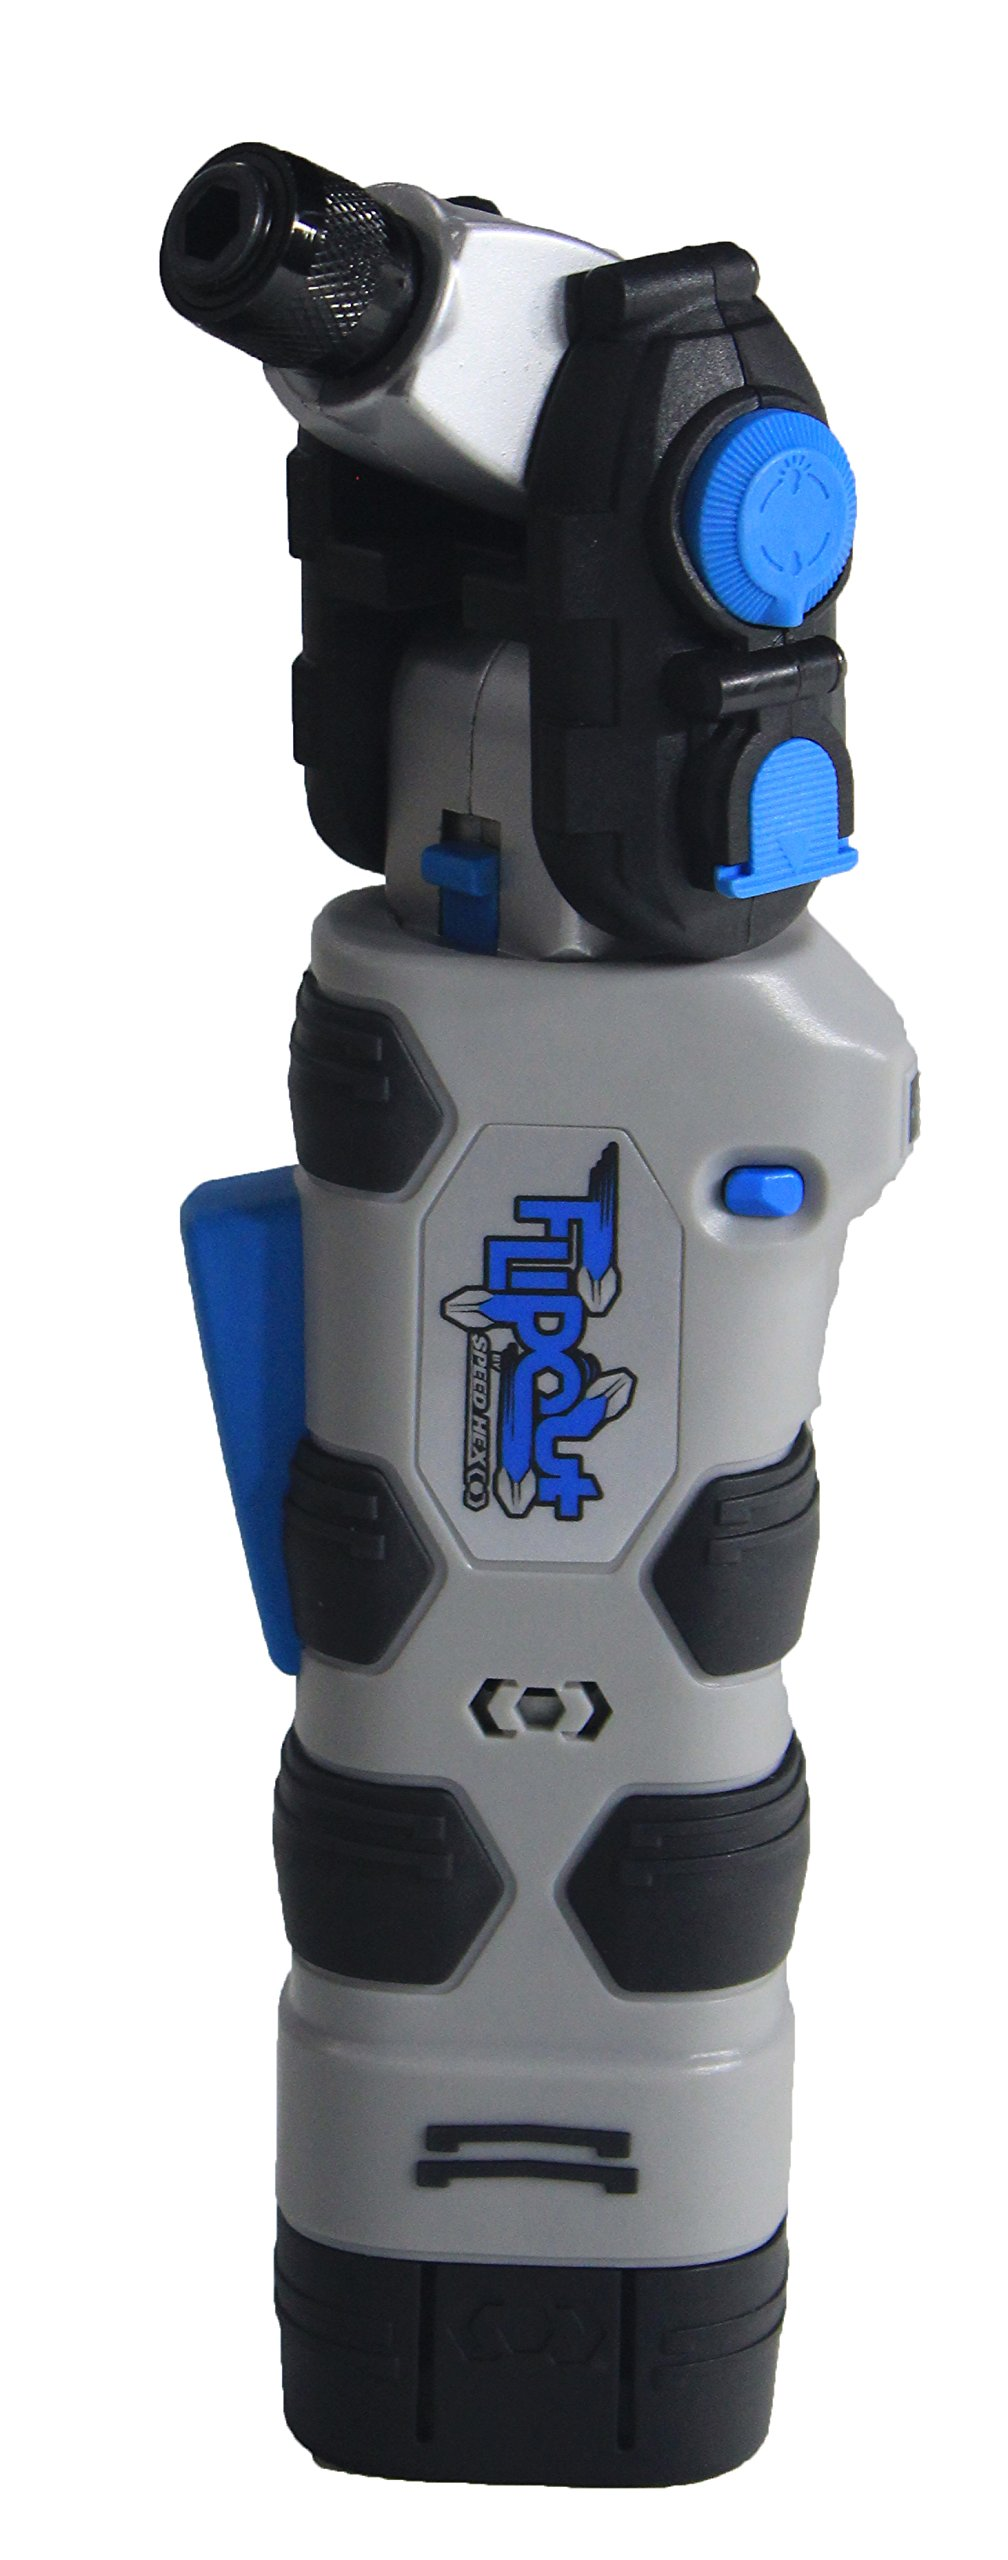 SpeedHex FlipOut 2 Rechargeable Power Driver with Removable Battery and Bonus Bits – FOSH162BP